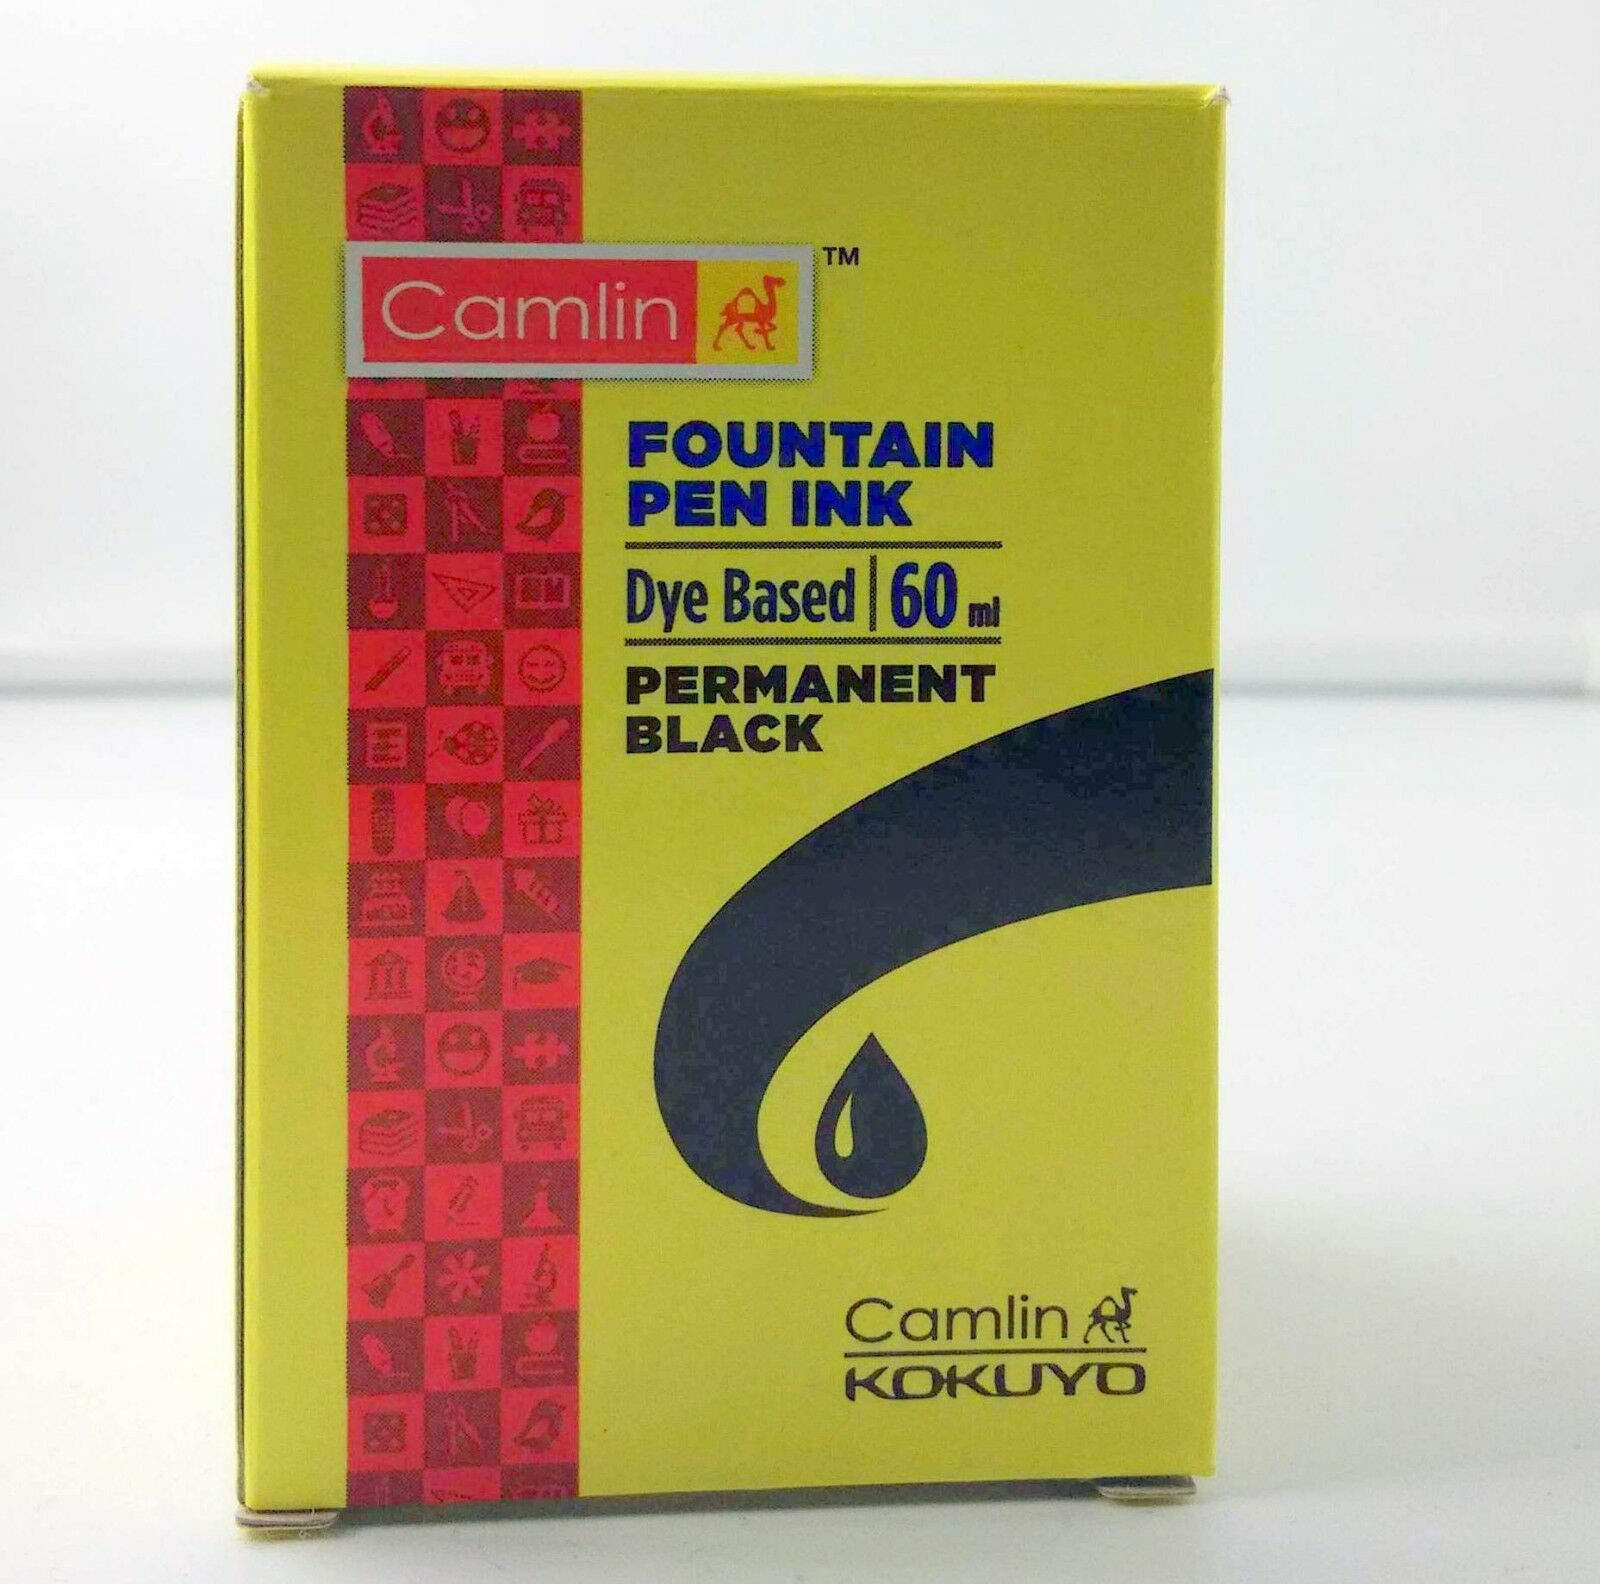 12 Camel Fountain Pen Ink PERMANENT BLACK Bottles 60 ml 2oz Camlin 12 qty Sealed